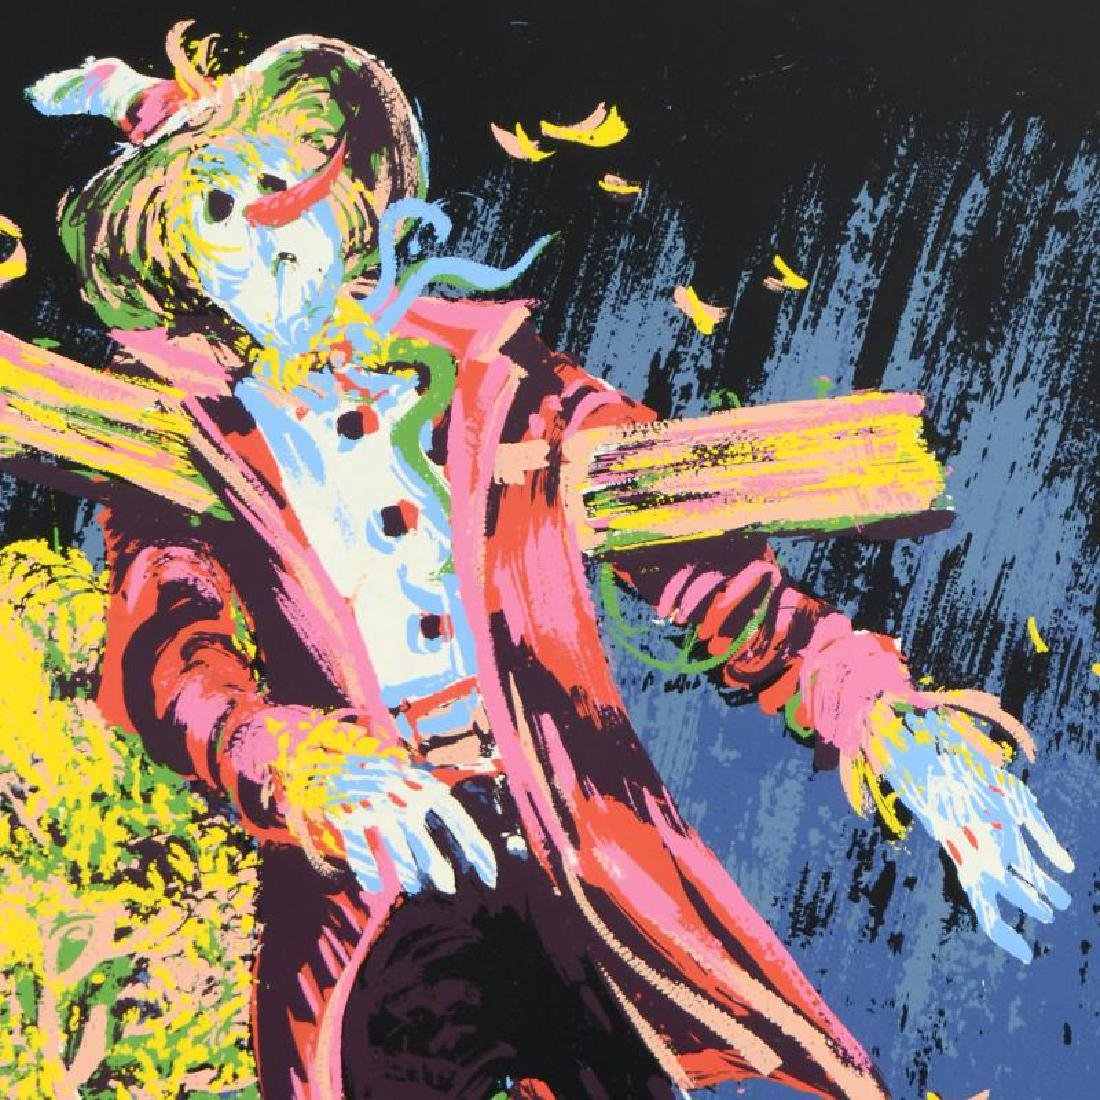 Scare Crow Limited Edition Serigraph by Paul Blaine - 2